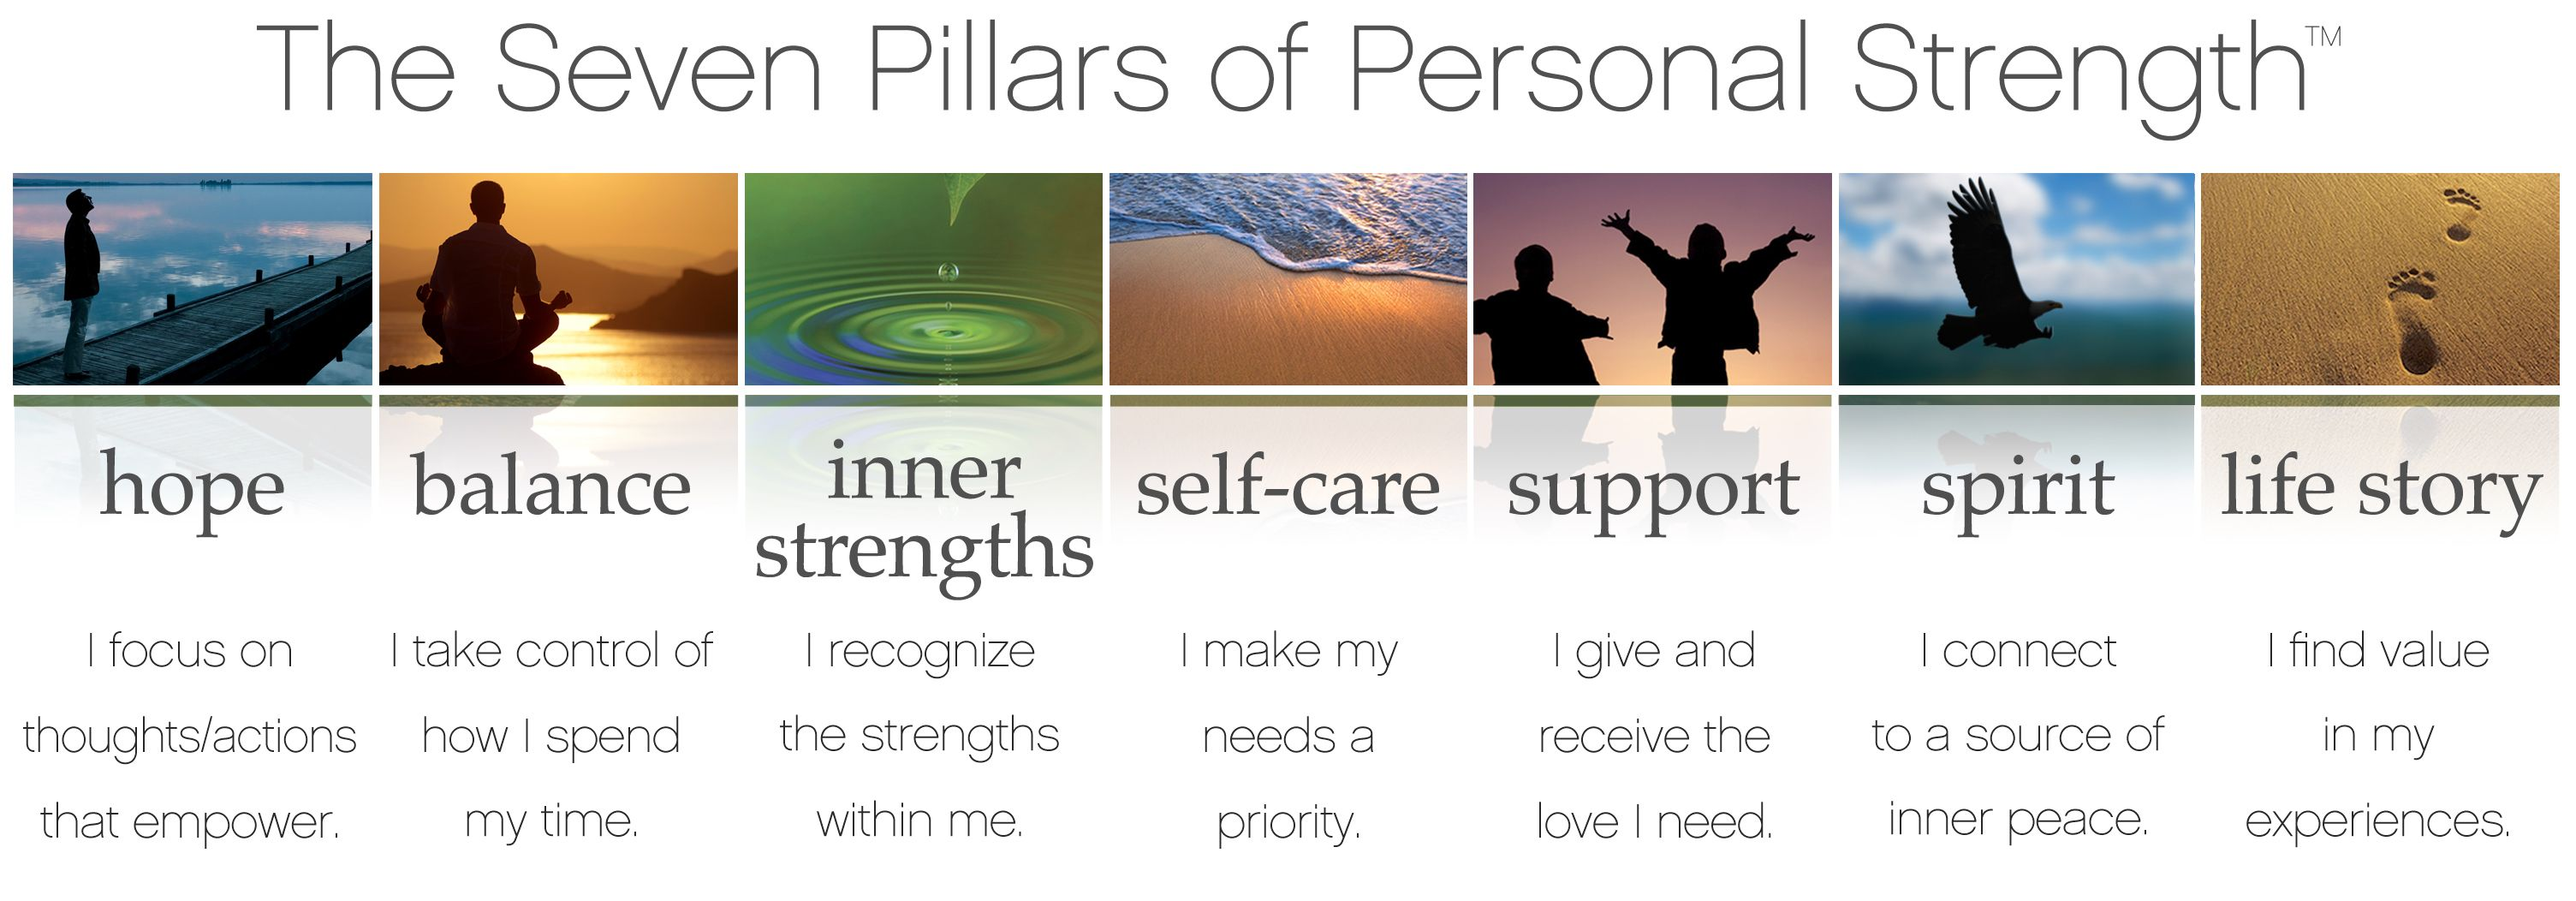 best images about the seven pillars of personal strength on 17 best images about the seven pillars of personal strength other your life and strength